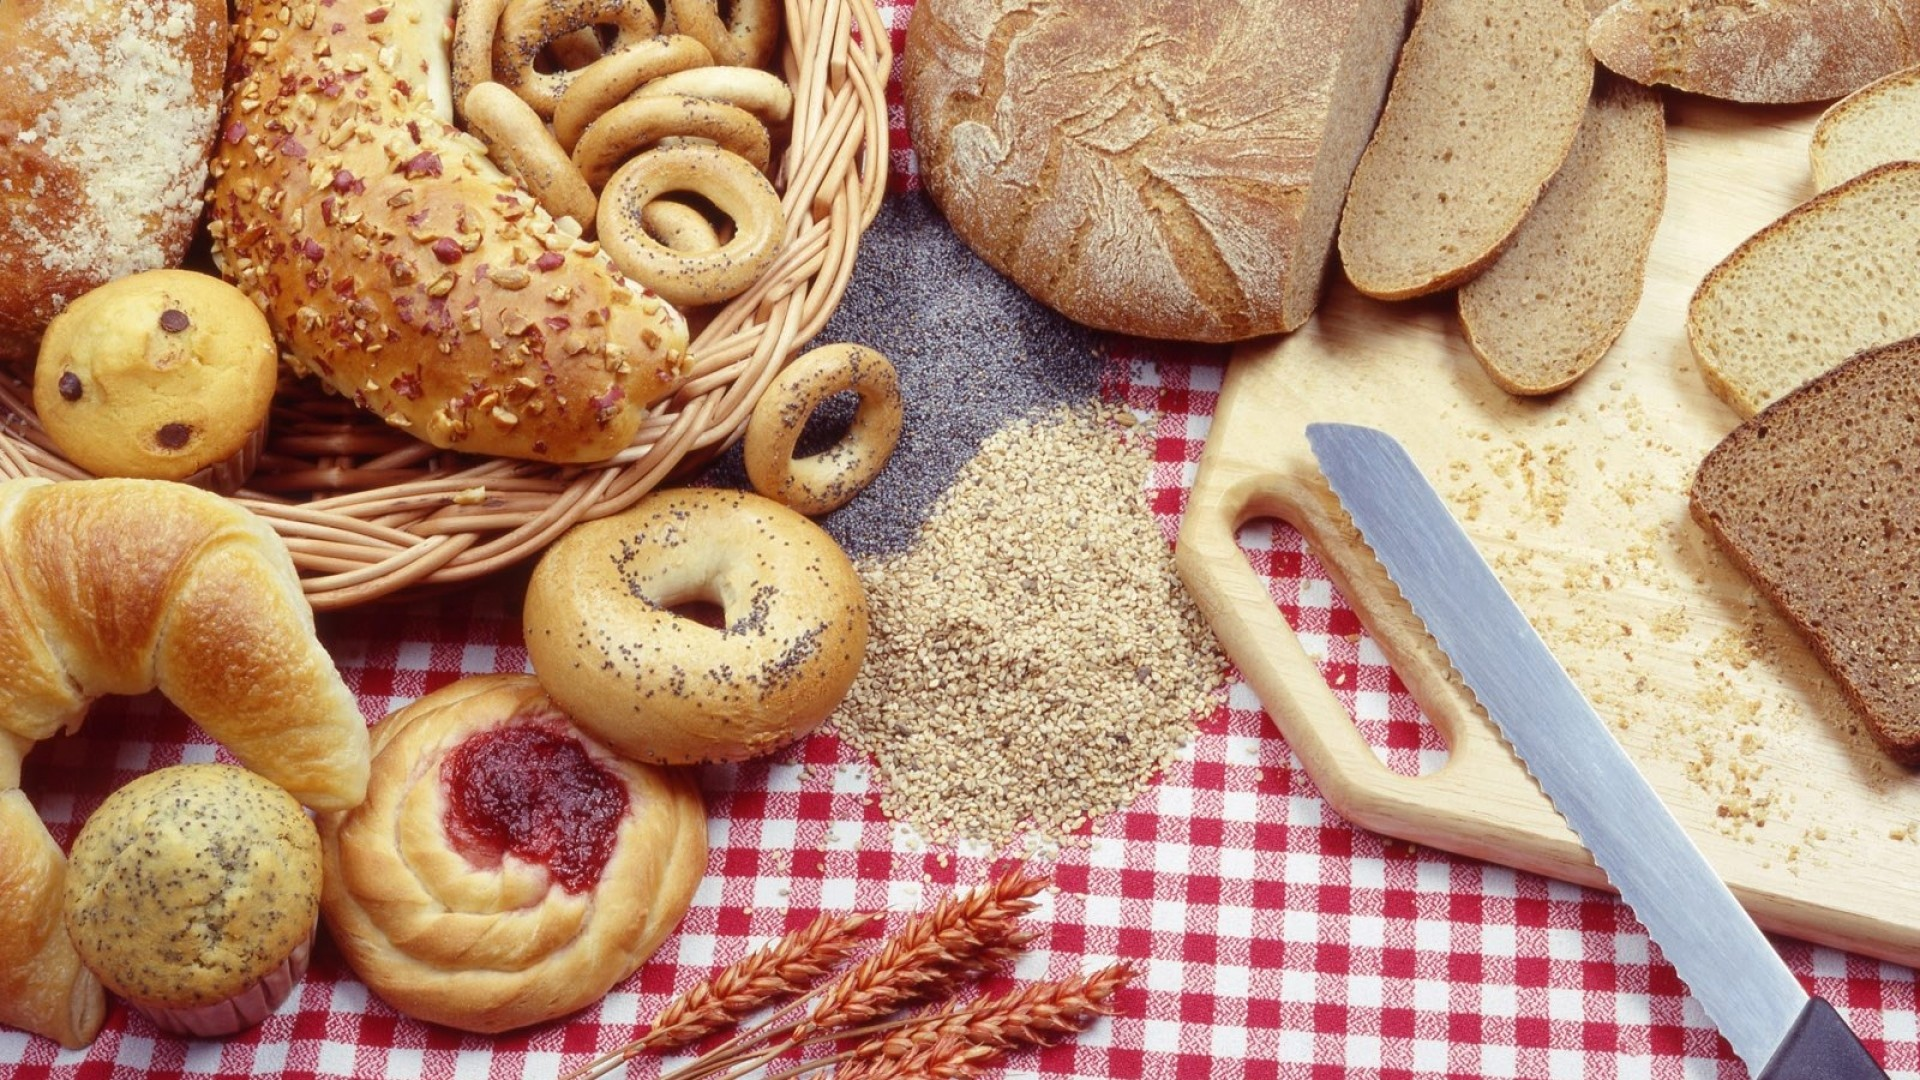 Bakery Wallpapers 70 Images